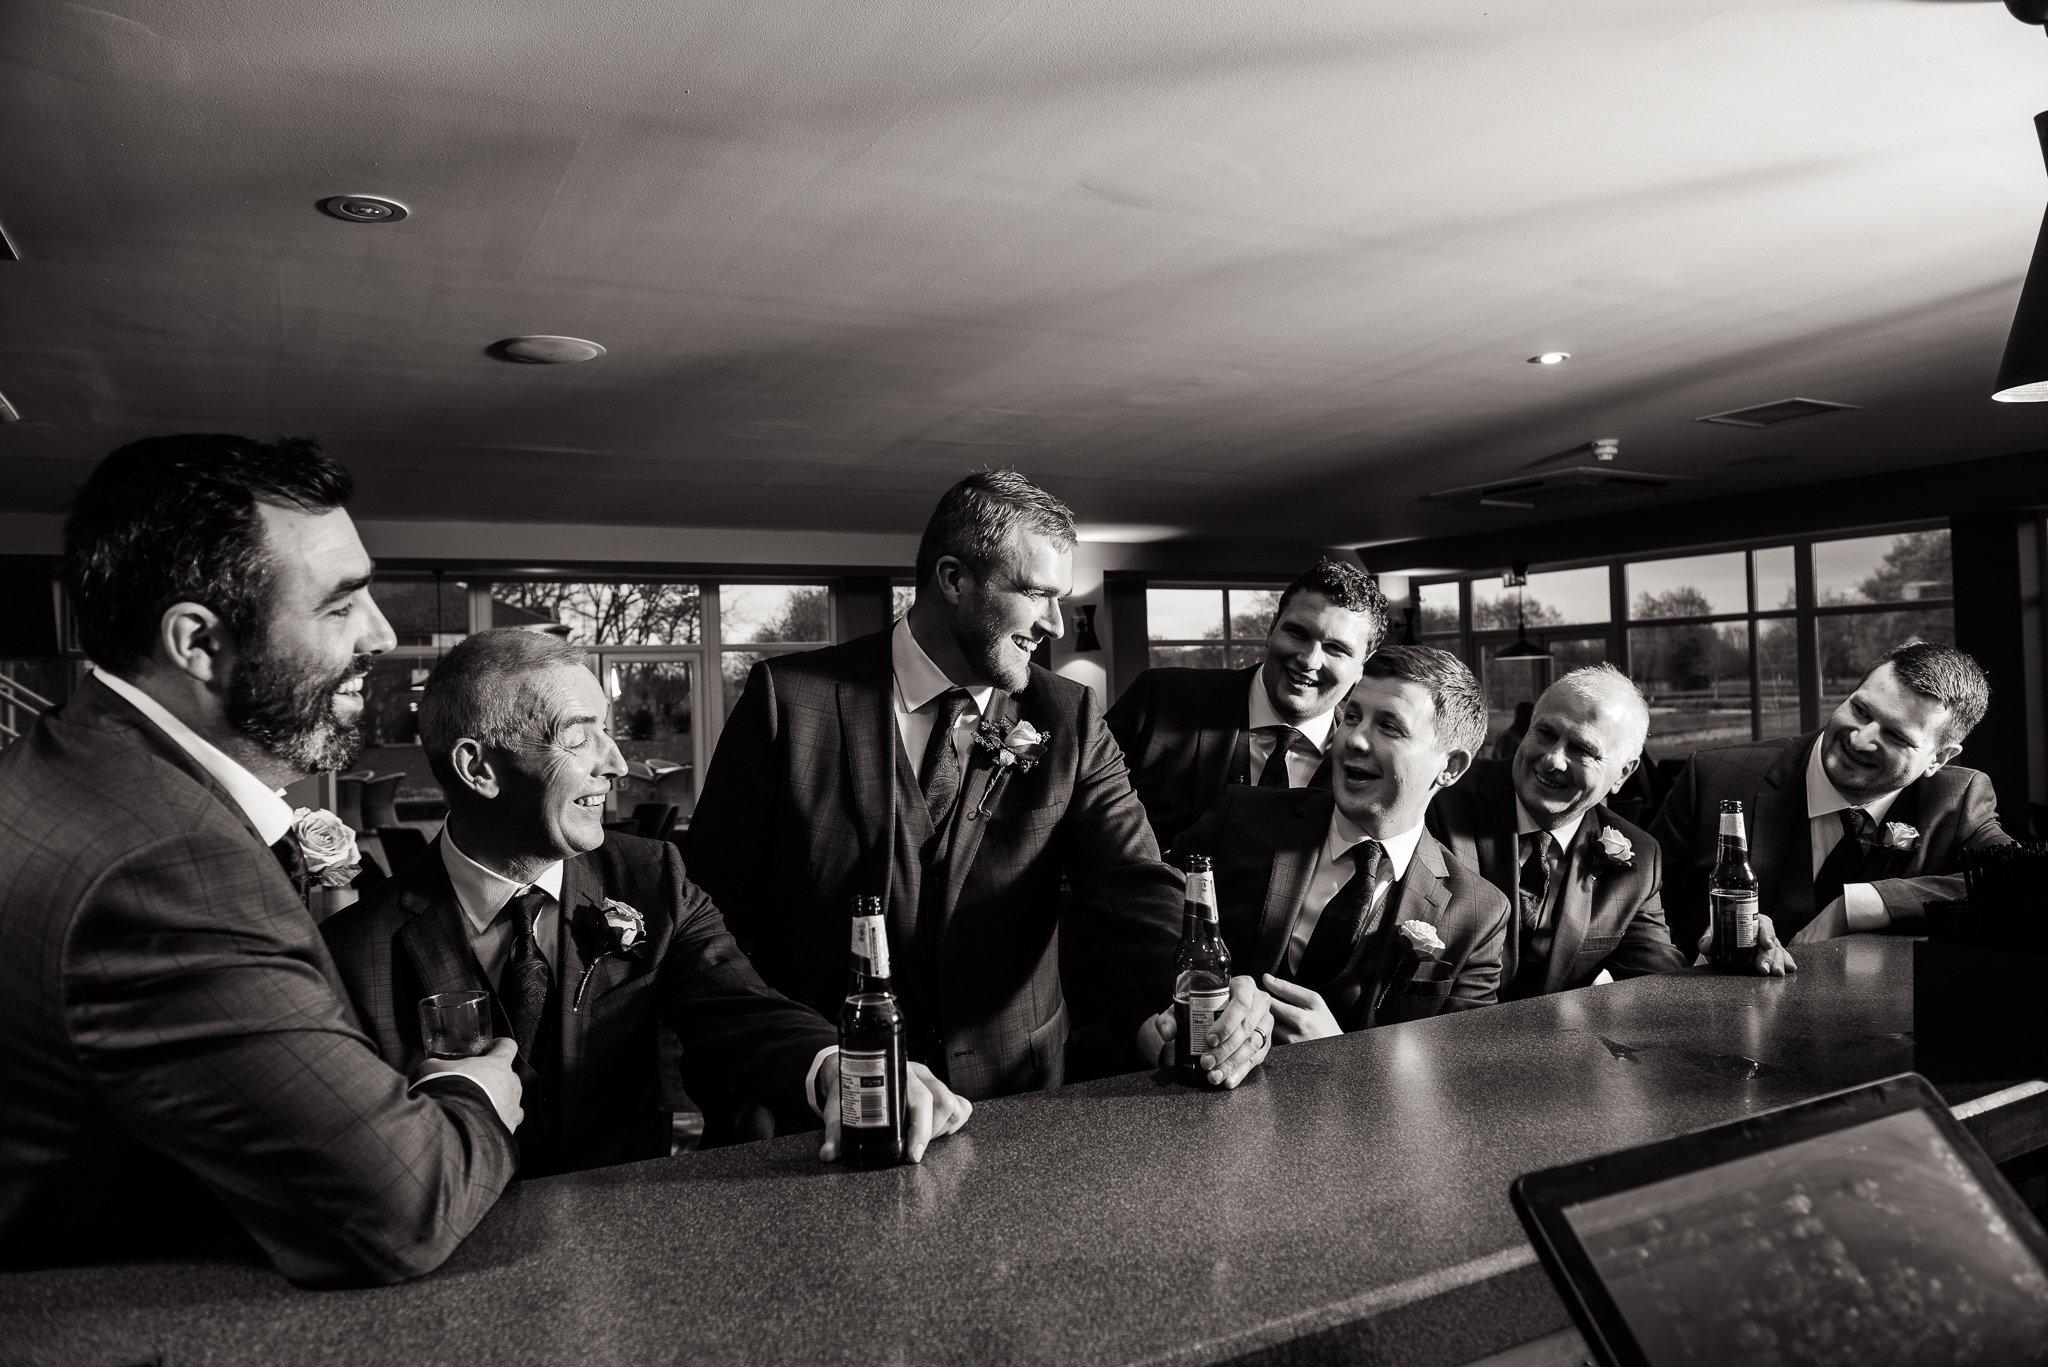 groom and groomsmen having a laugh and a joke at the bar